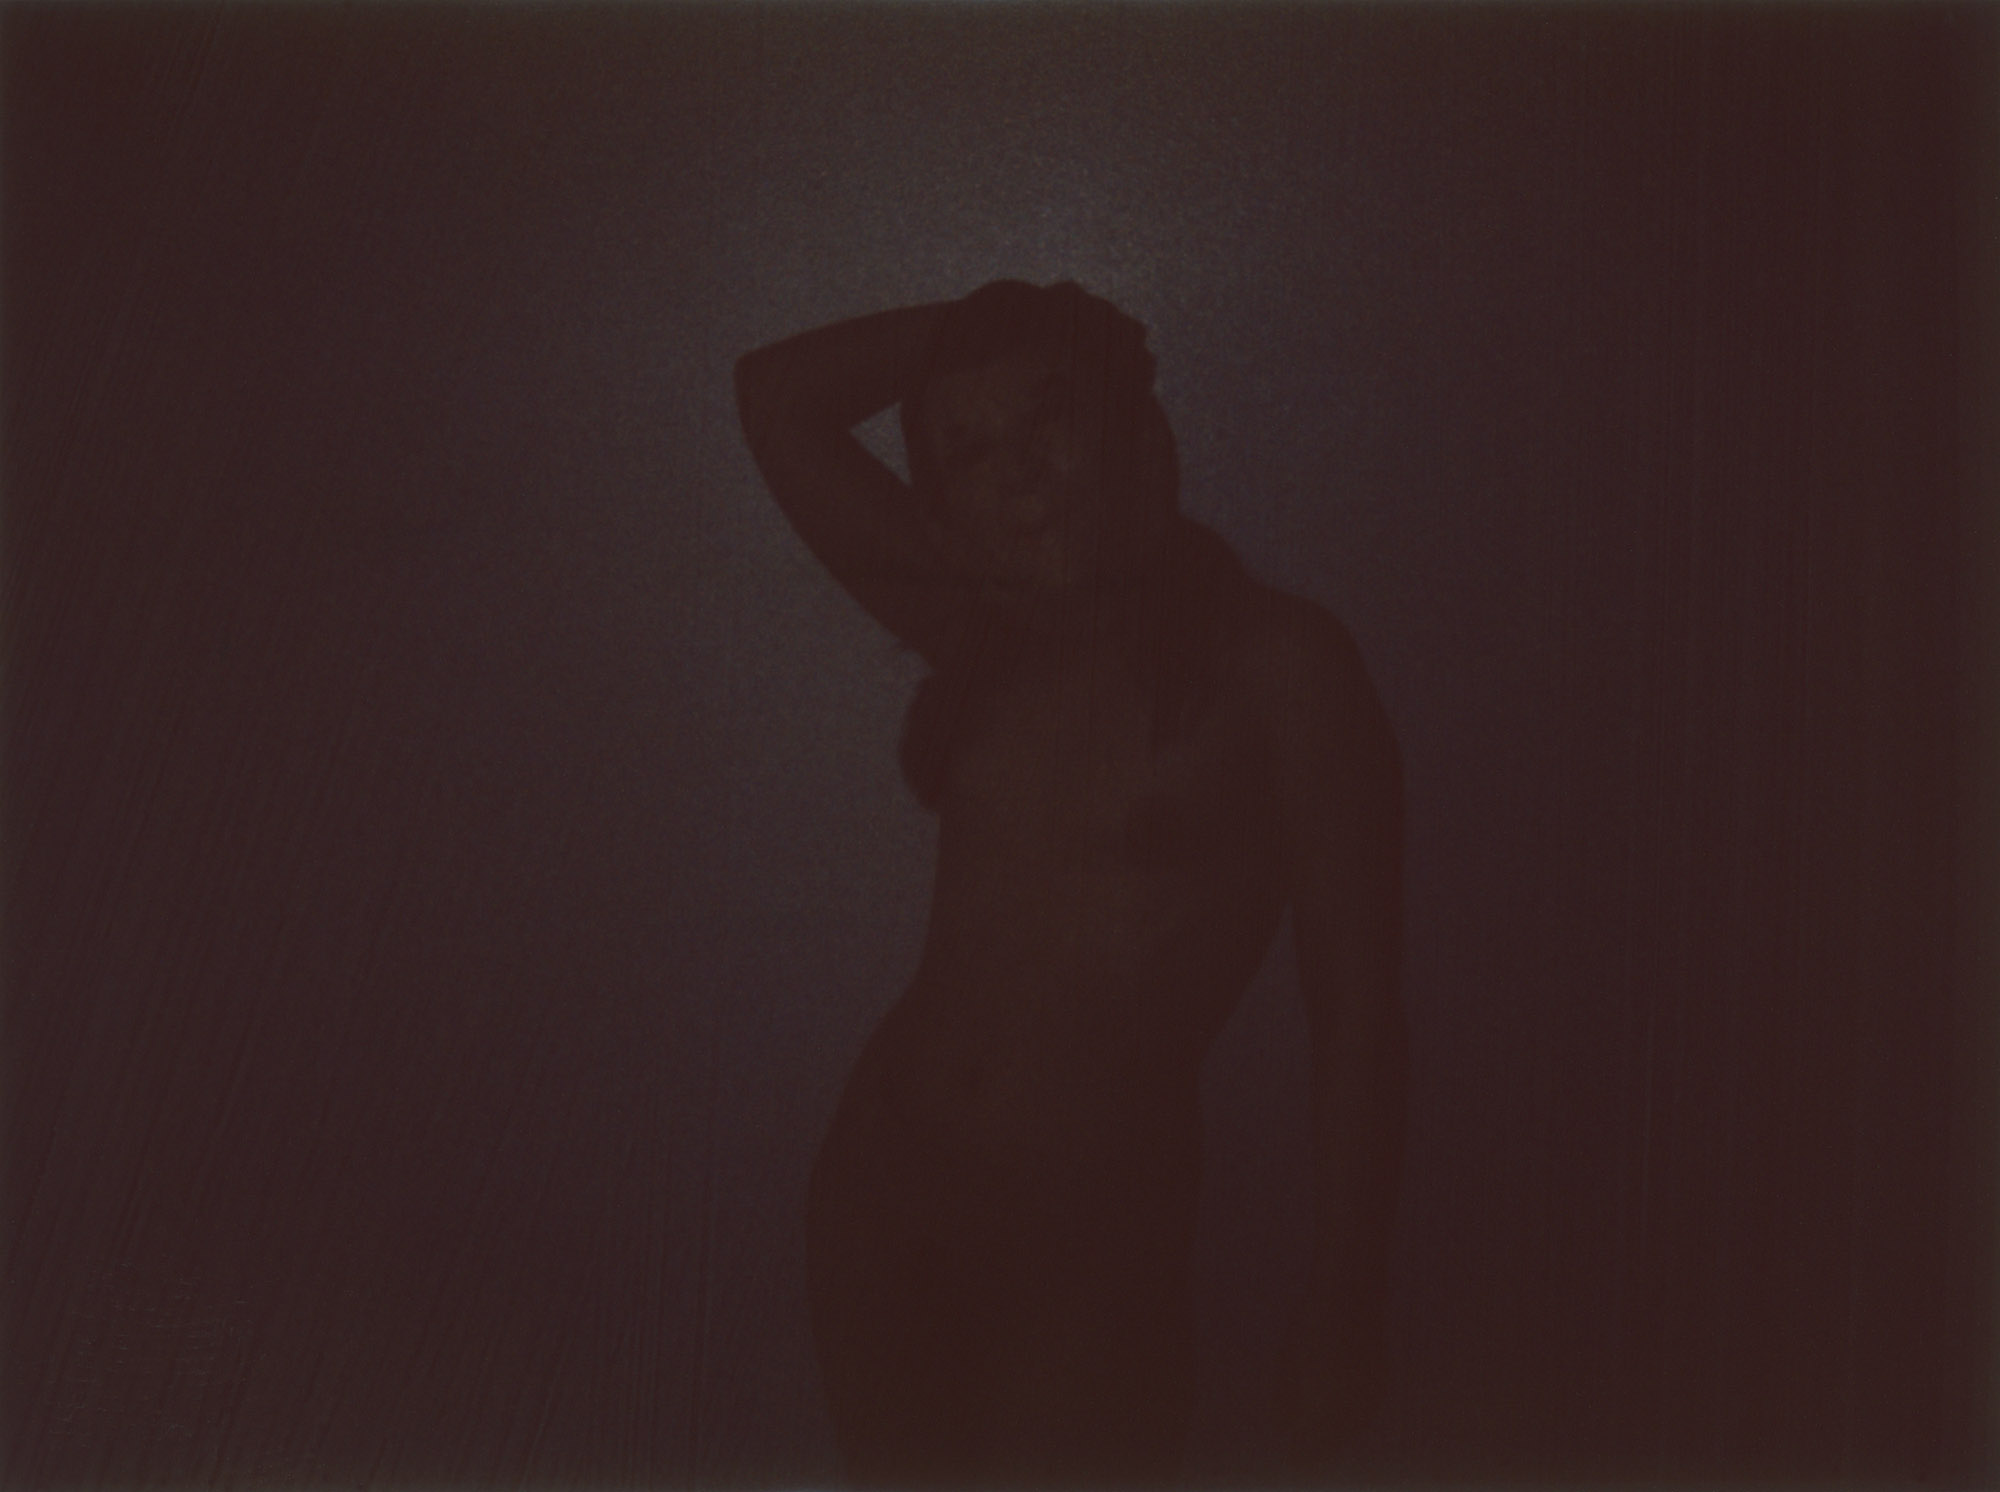 Nude Reagan by John Brian King (8)